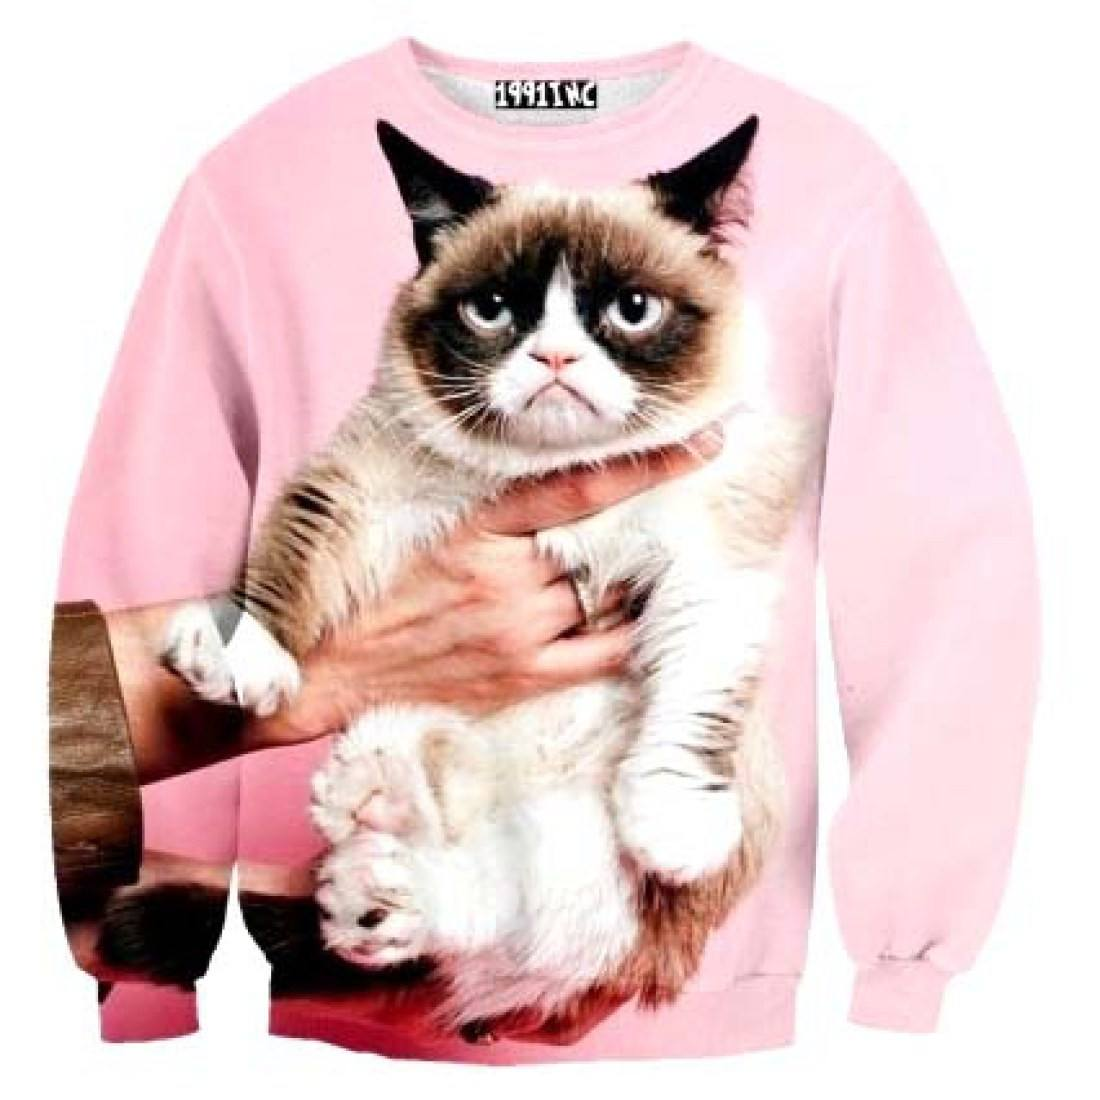 Adorable Grumpy Cat Graphic Print Pullover Sweatshirt Sweater in Pink